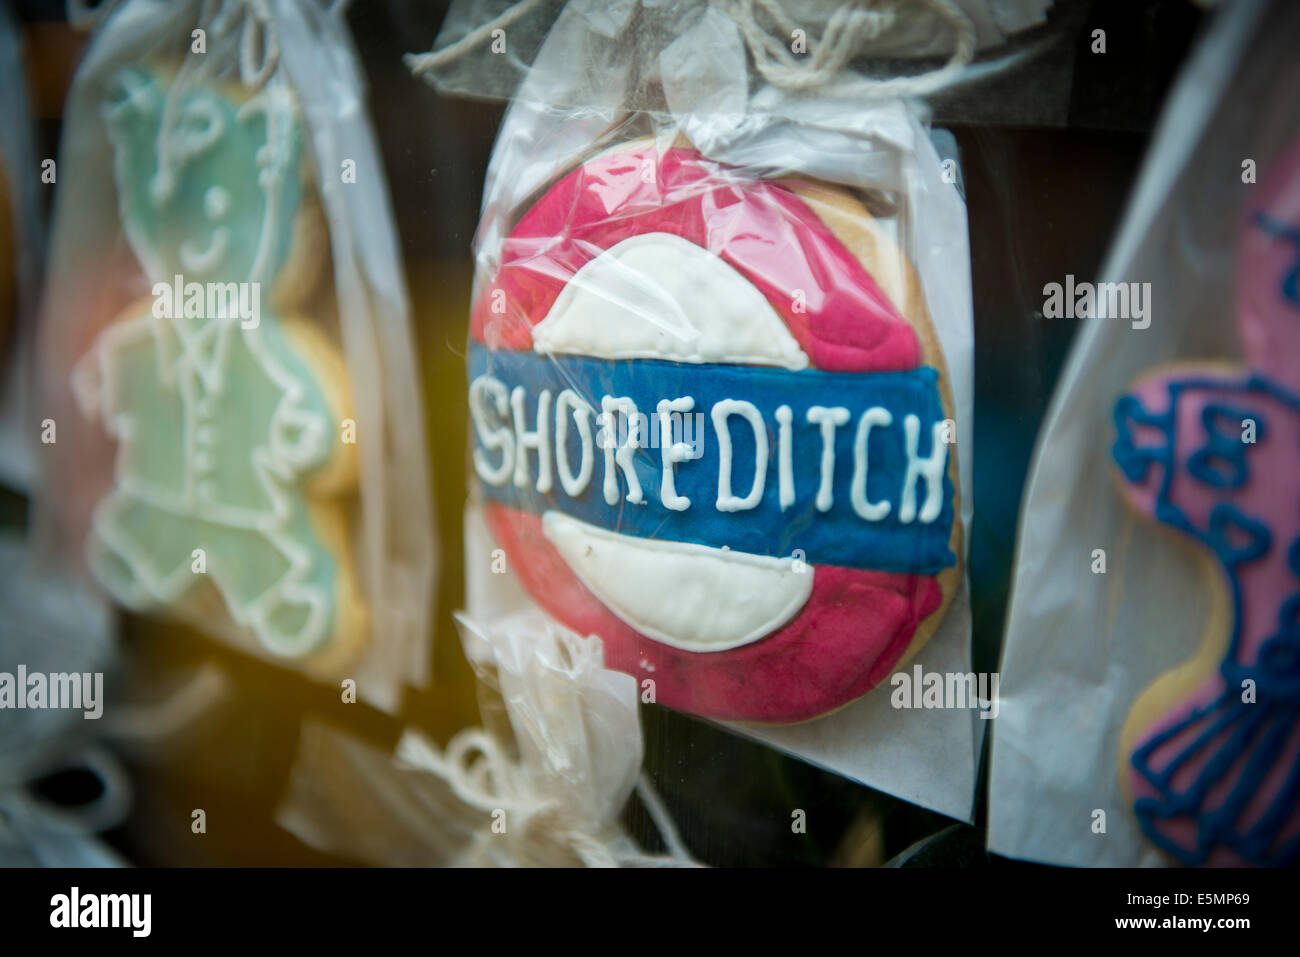 Decorated biscuits, Brick Lane Shoreditch, East London, UK 2014 - Stock Image